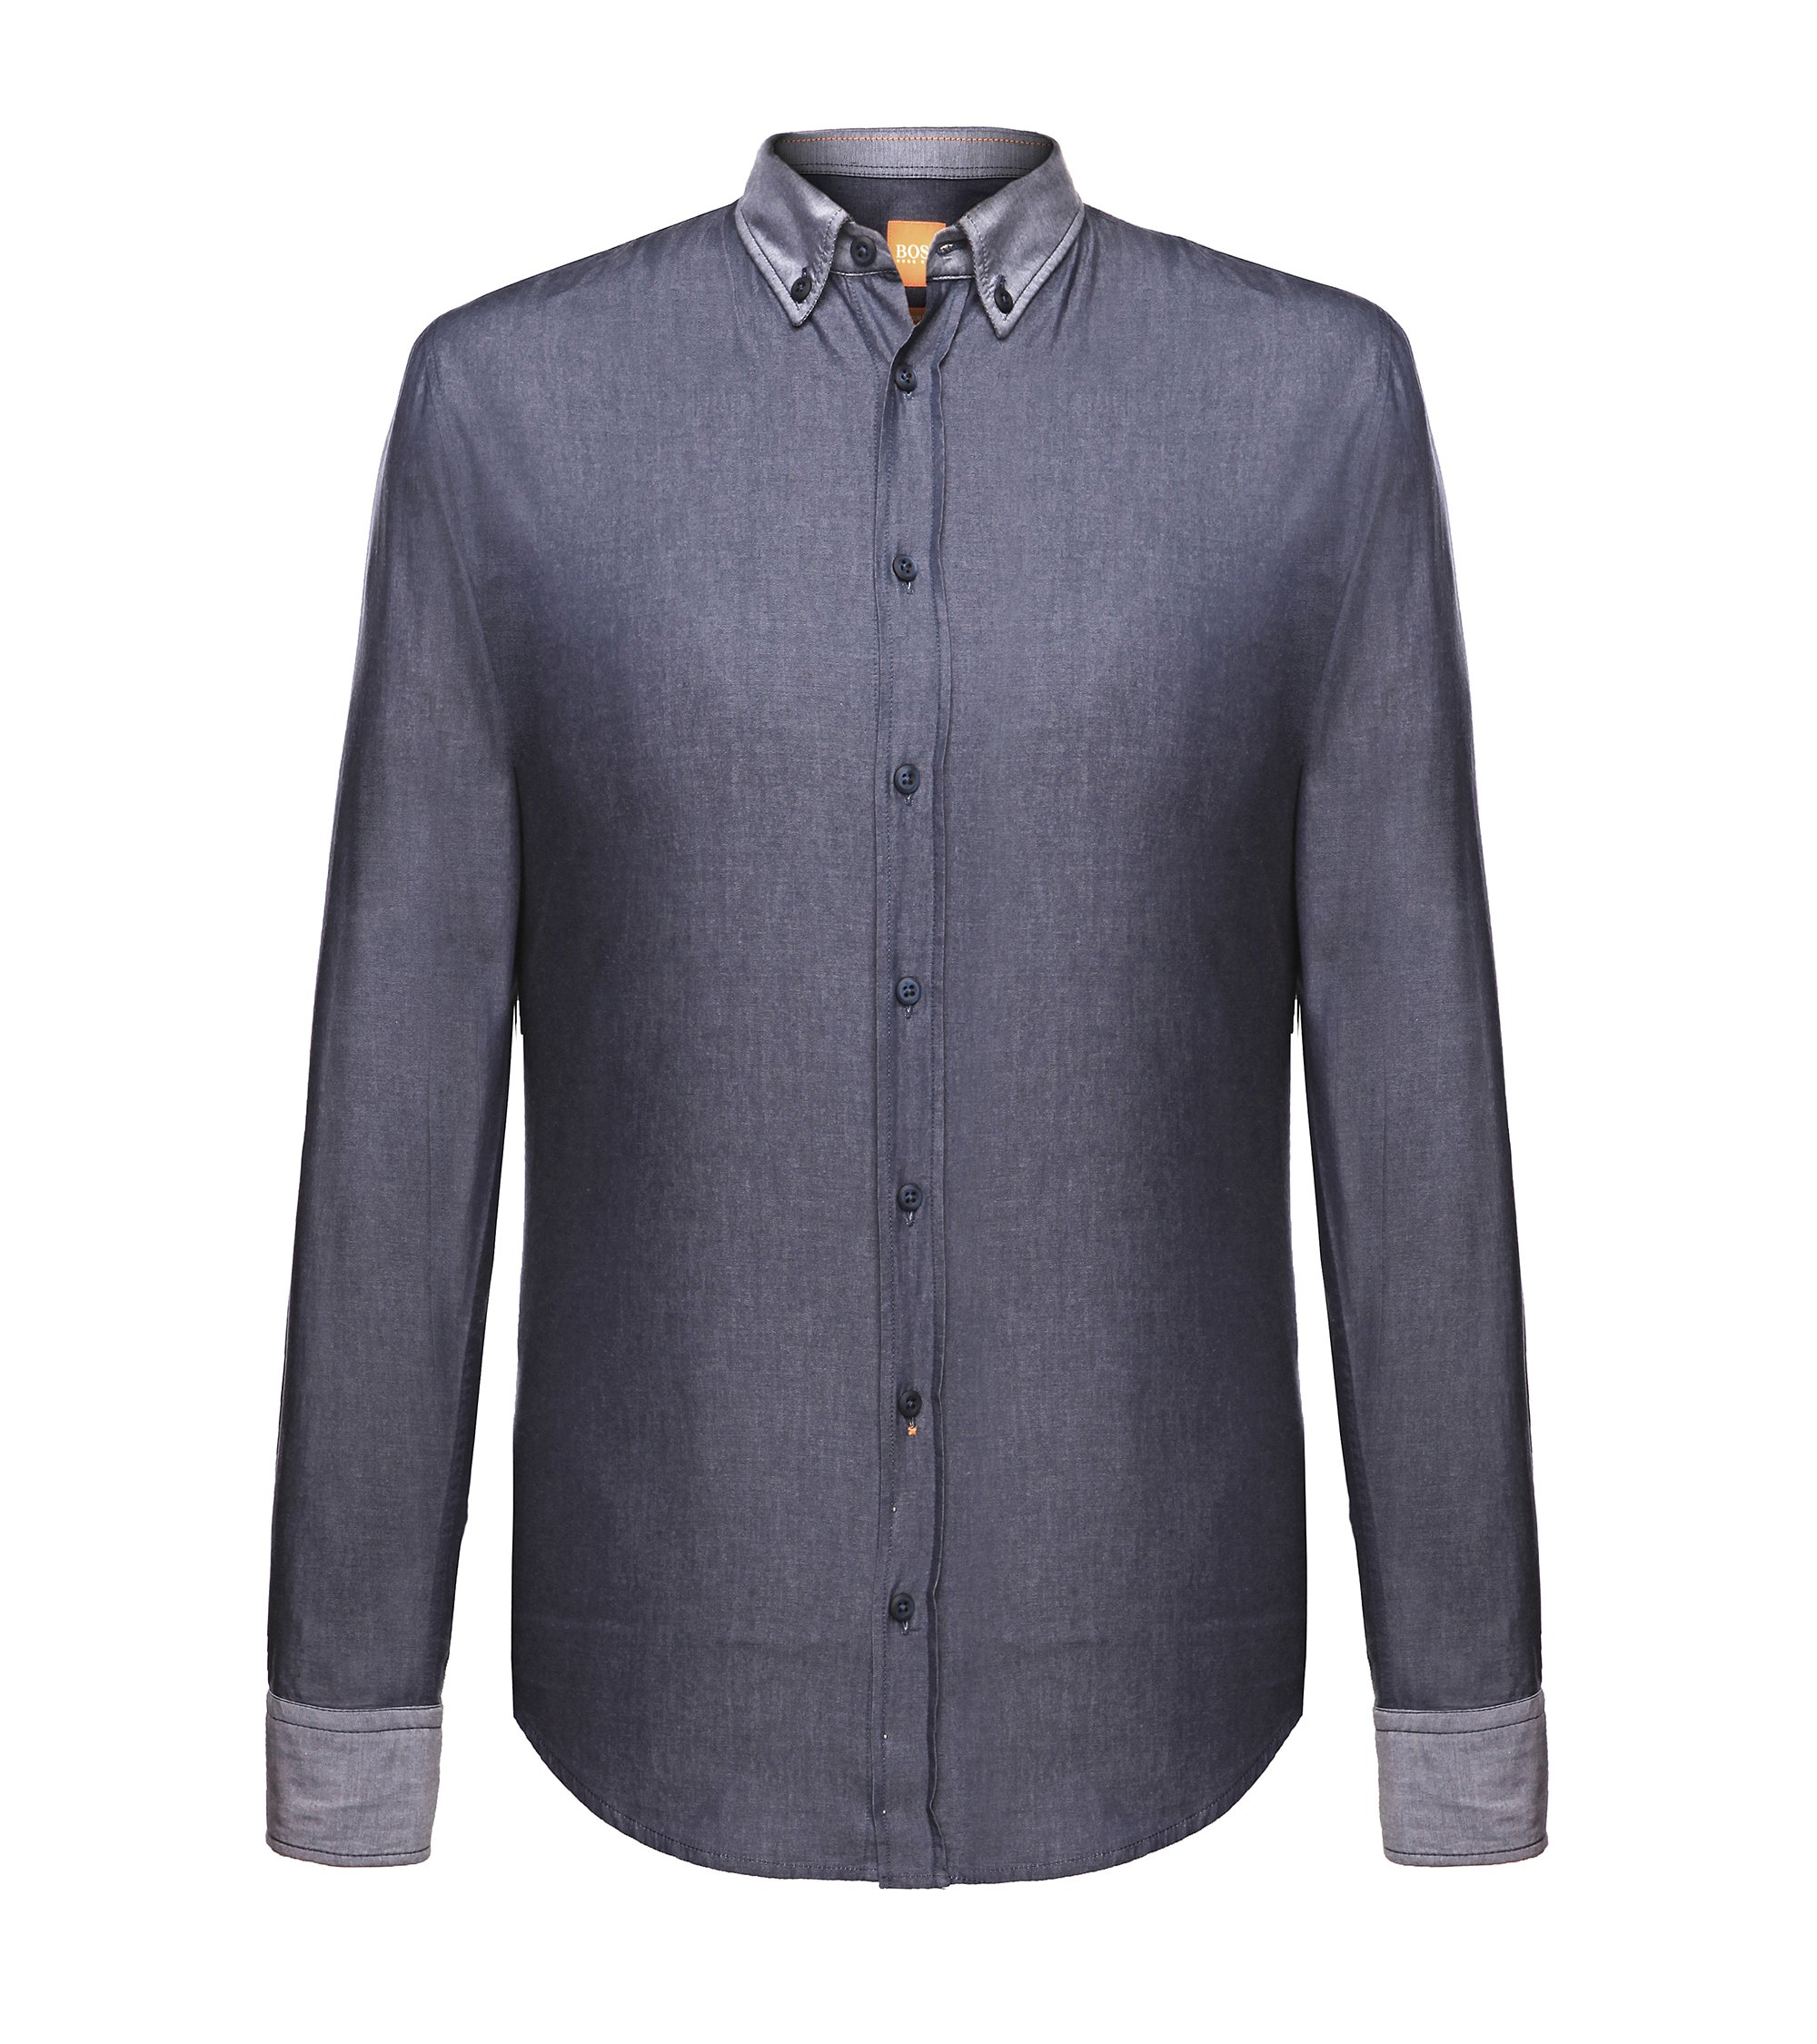 Camicia slim fit con polsini e colletto a rovescio by BOSS Orange, Blu